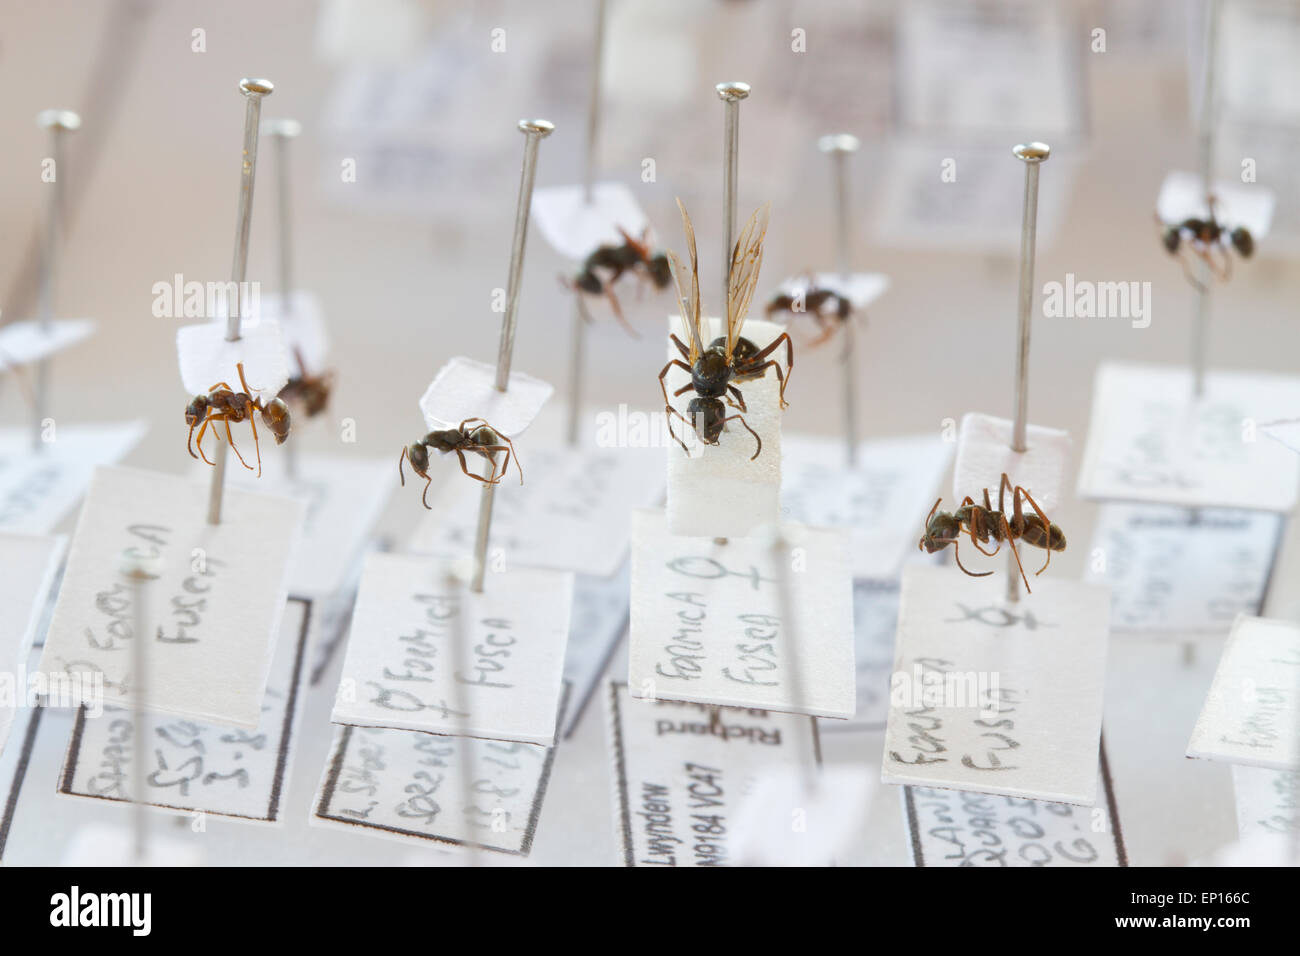 Negro Ant (Formica fusca) specimens in a reference collection of British ants. Powys, Wales. - Stock Image